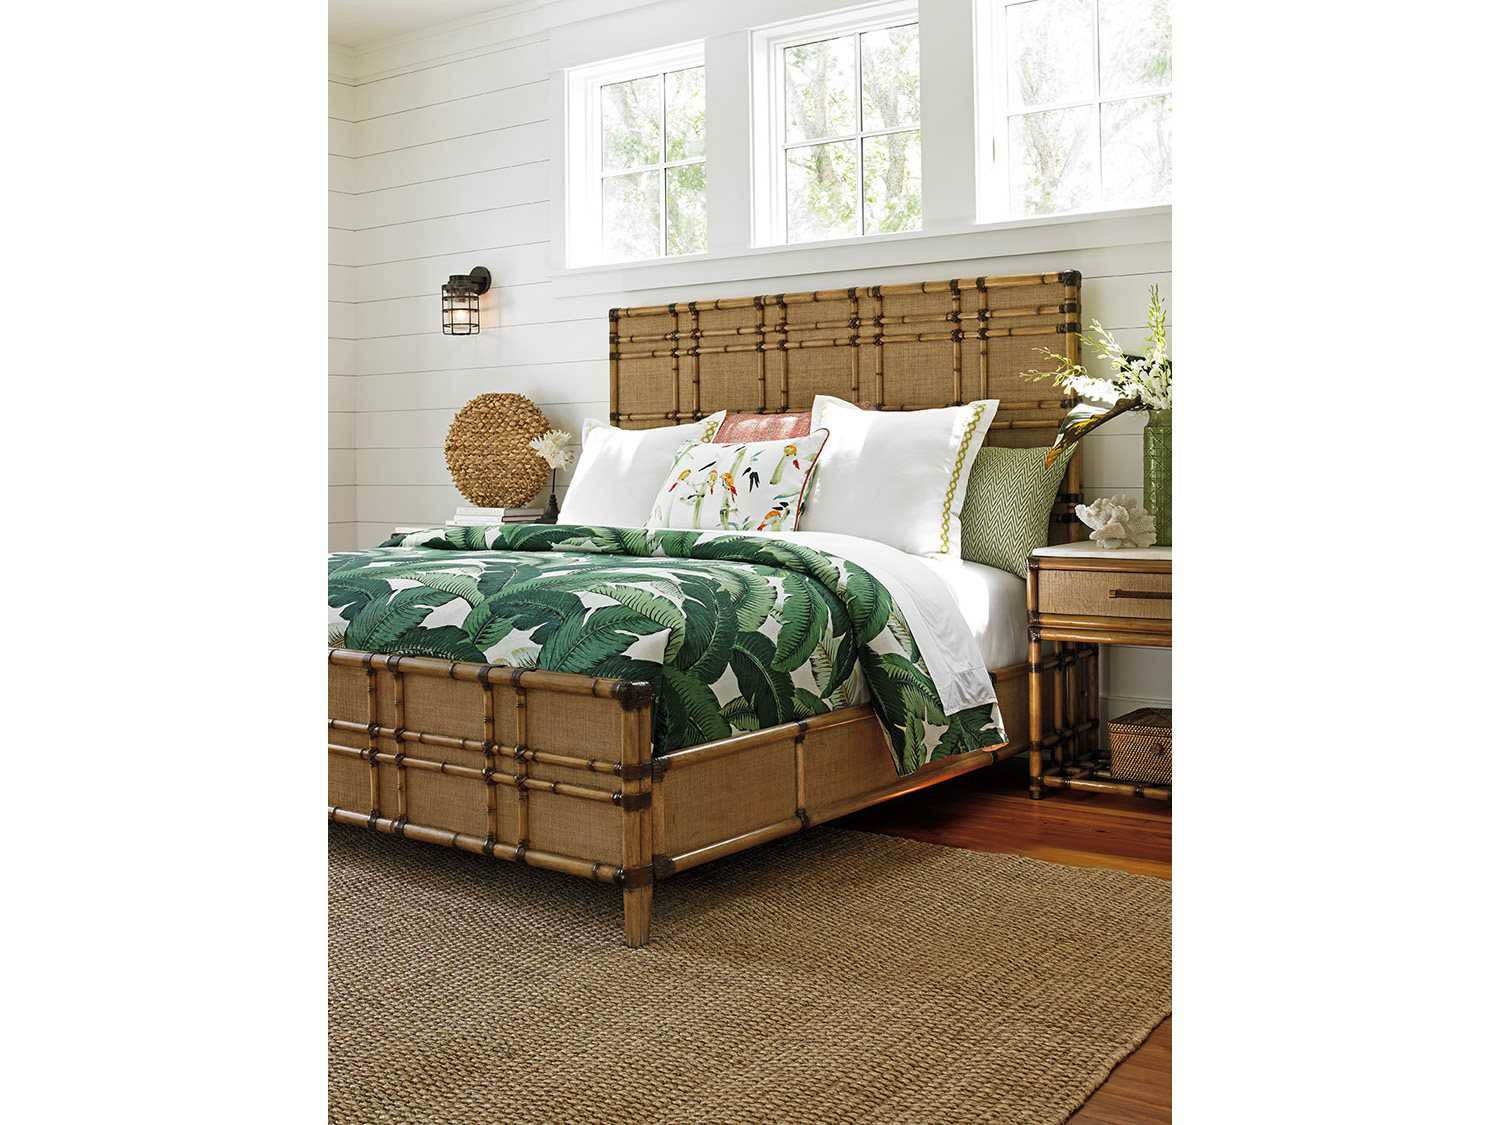 Tommy bahama twin palms panel bed bedroom set totwinpbedset Tommy bahama bedroom furniture sets